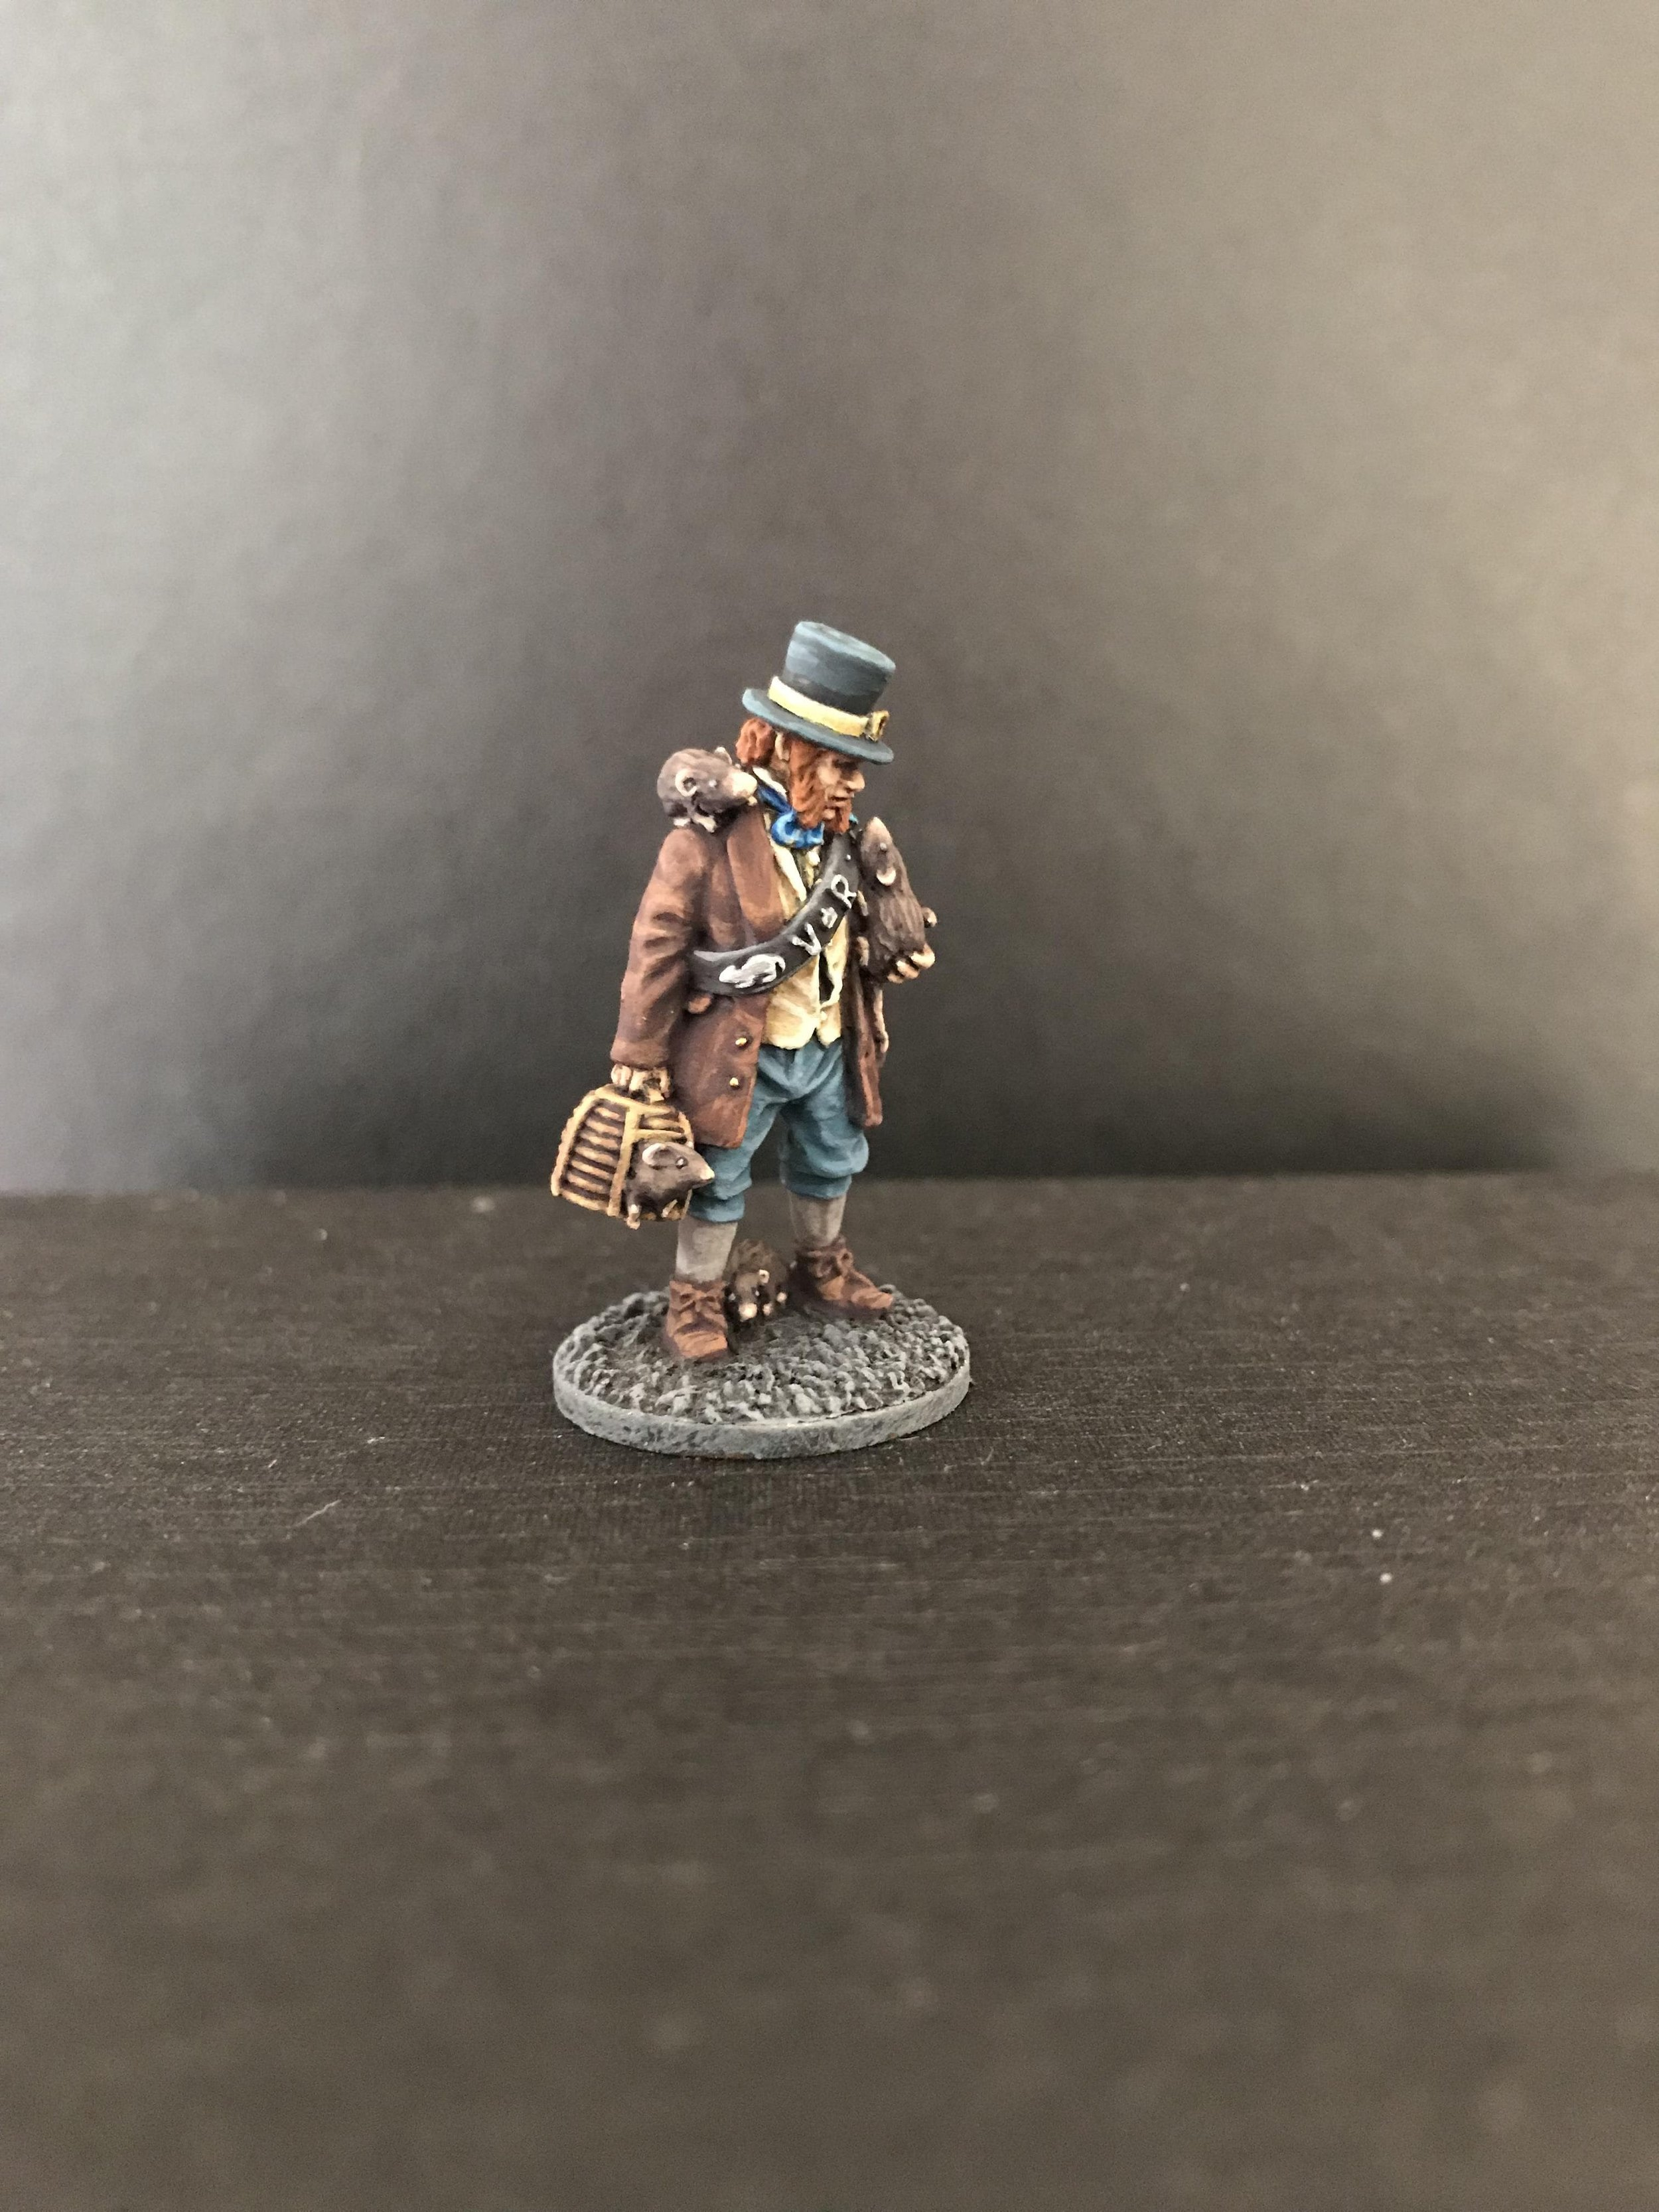 Solomon Bartholomew, the Rat Catcher. He will be for Cthulhu by Gaslight, which is set in 19th century London.